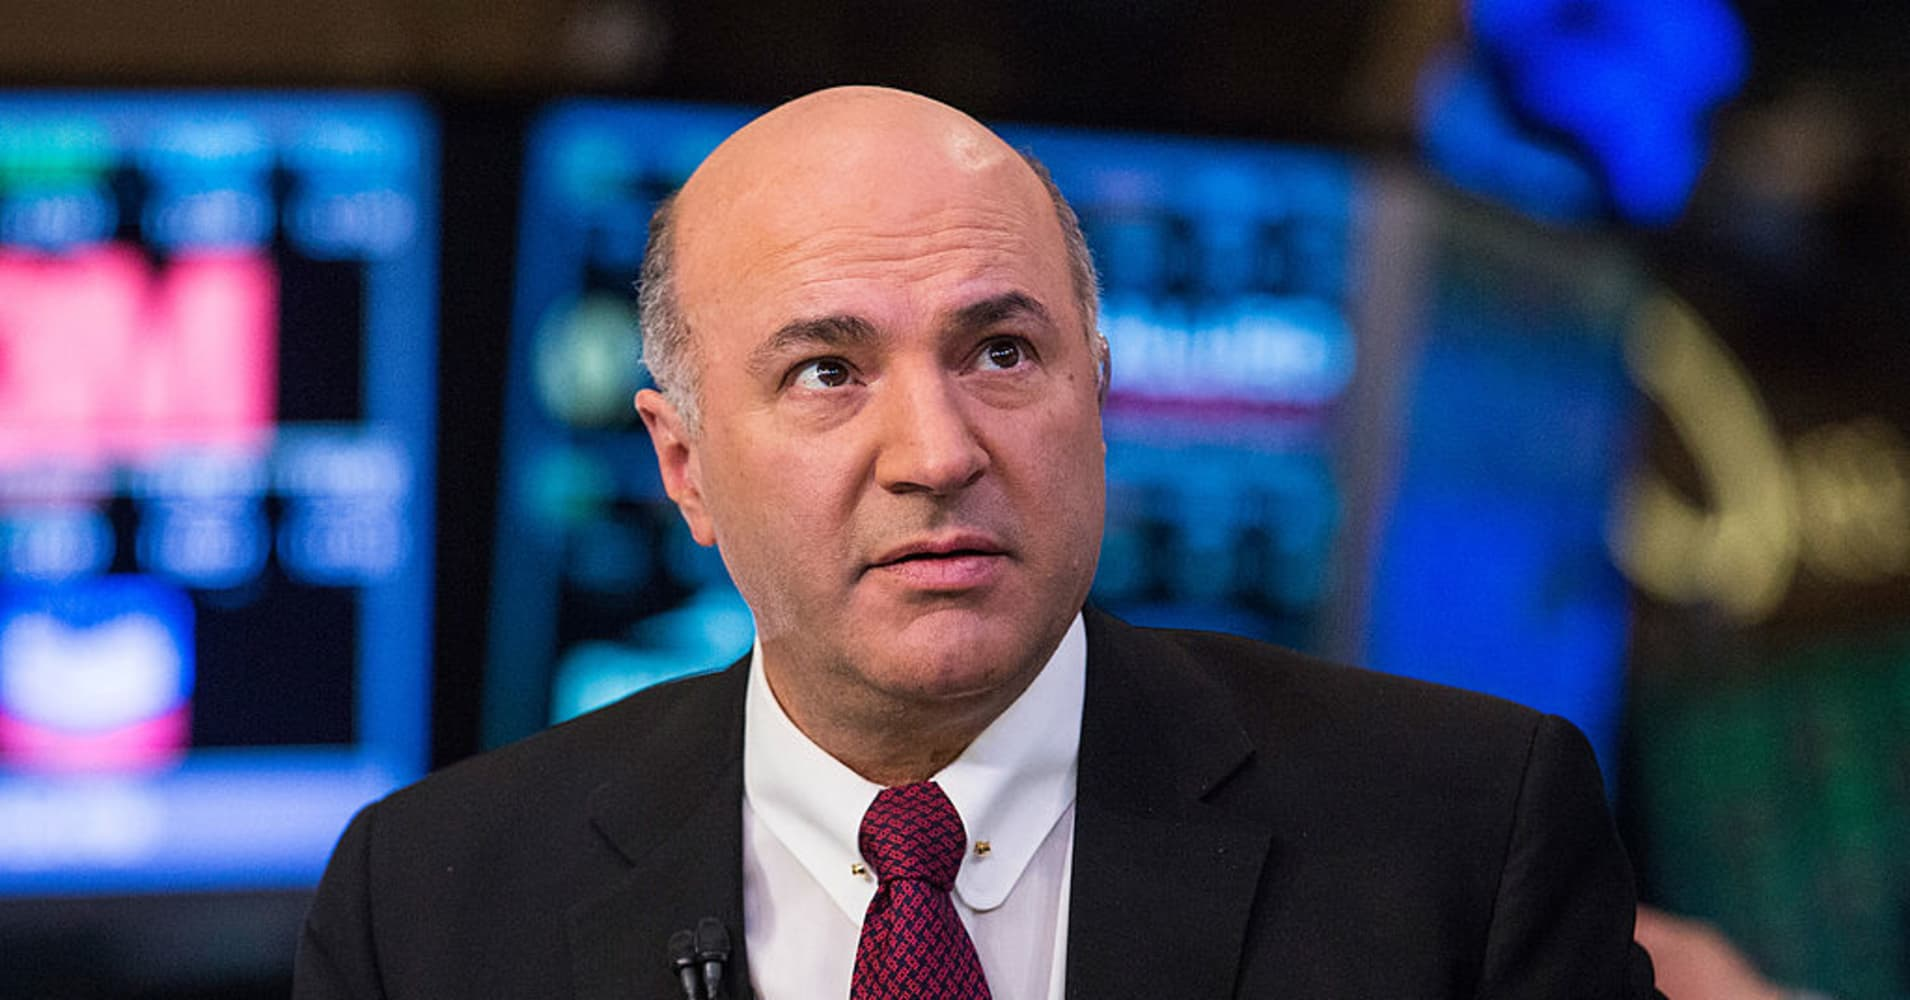 Kevin O'Leary, an investor on the television show 'Shark Tank' is seen on the floor of the New York Stock Exchange on the afternoon of March 4, 2014 in New York City.